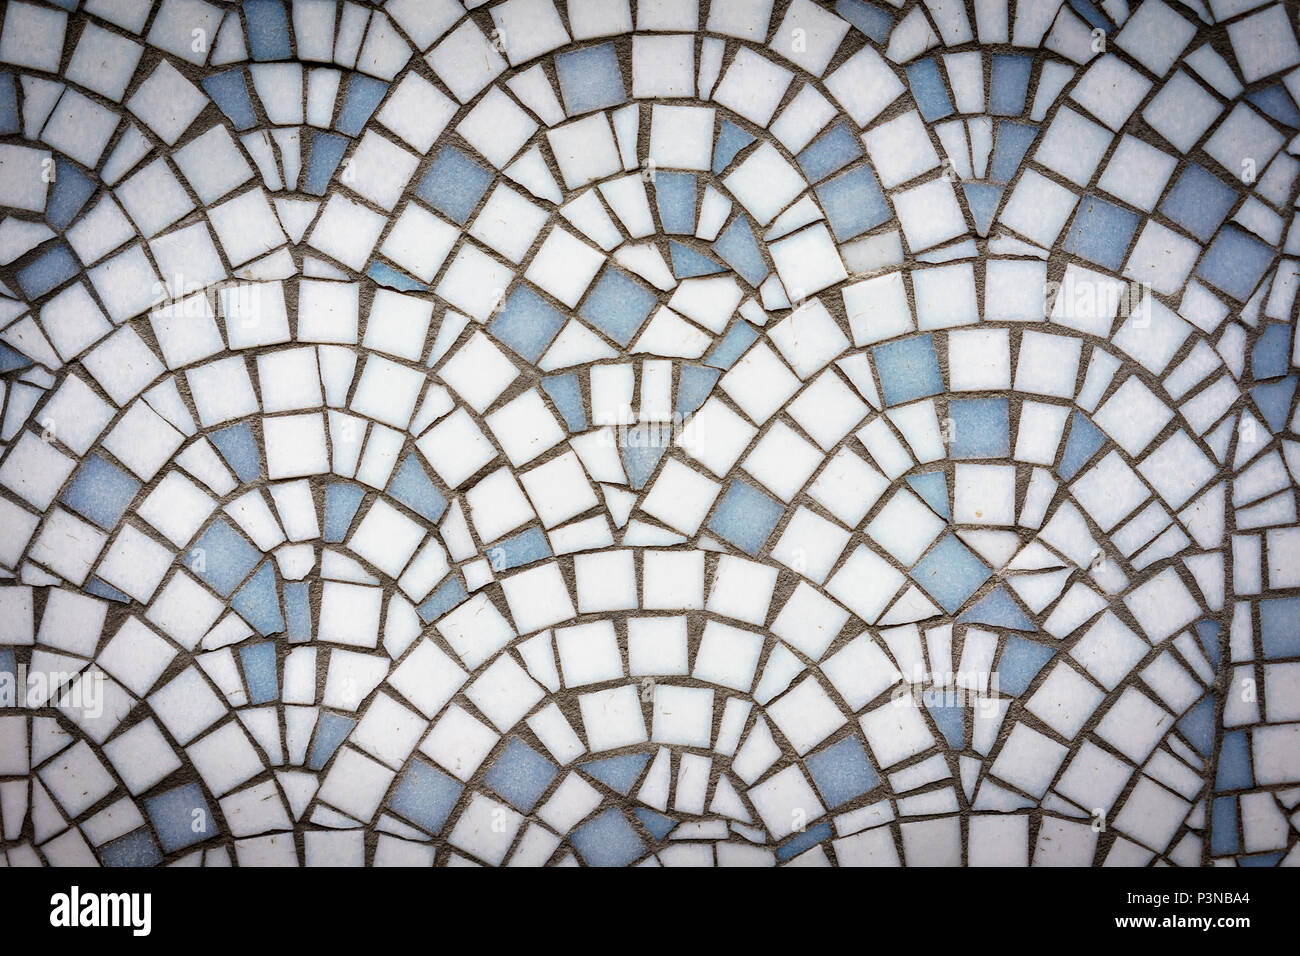 White and blue abstract mosaic seamless pattern. For design and decorate backdrop. Endless texture. Ceramic tile fragments. Landscape format. - Stock Image